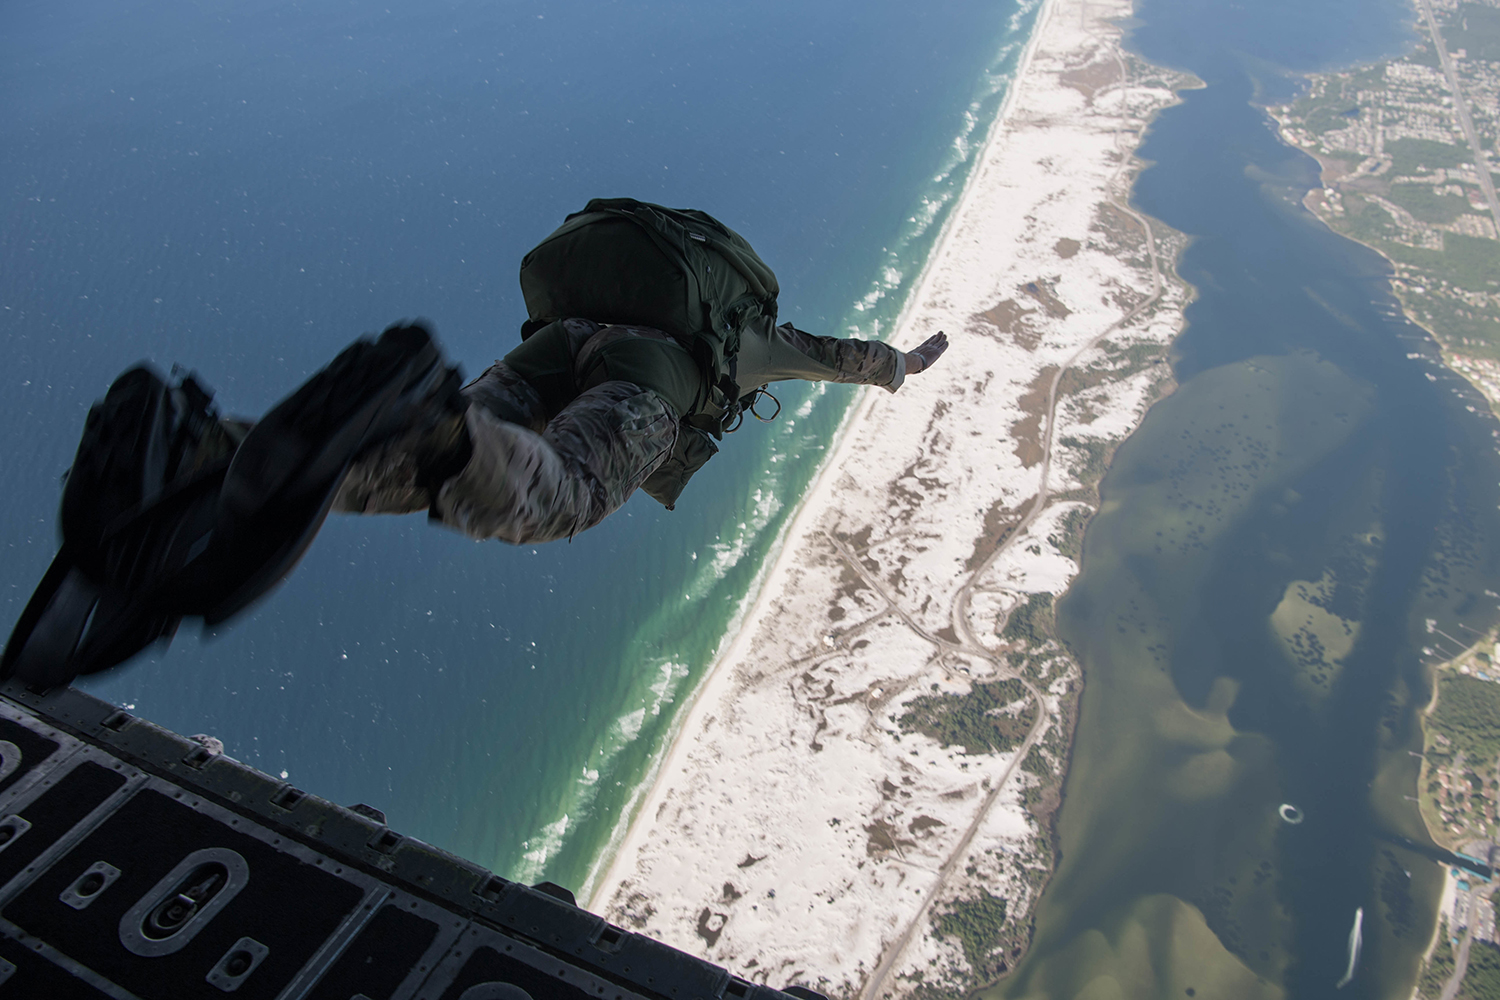 Col. Spencer Cocanour, 24th Special Operations Wing former acting commander, exits an MC-130H Combat Talon II during his final military free-fall jump at Hurlburt Field, Fla., Sept. 20, 2019. Cocanour is retiring after 24 years of service. (Staff Sgt. Rose Gudex/Air Force)